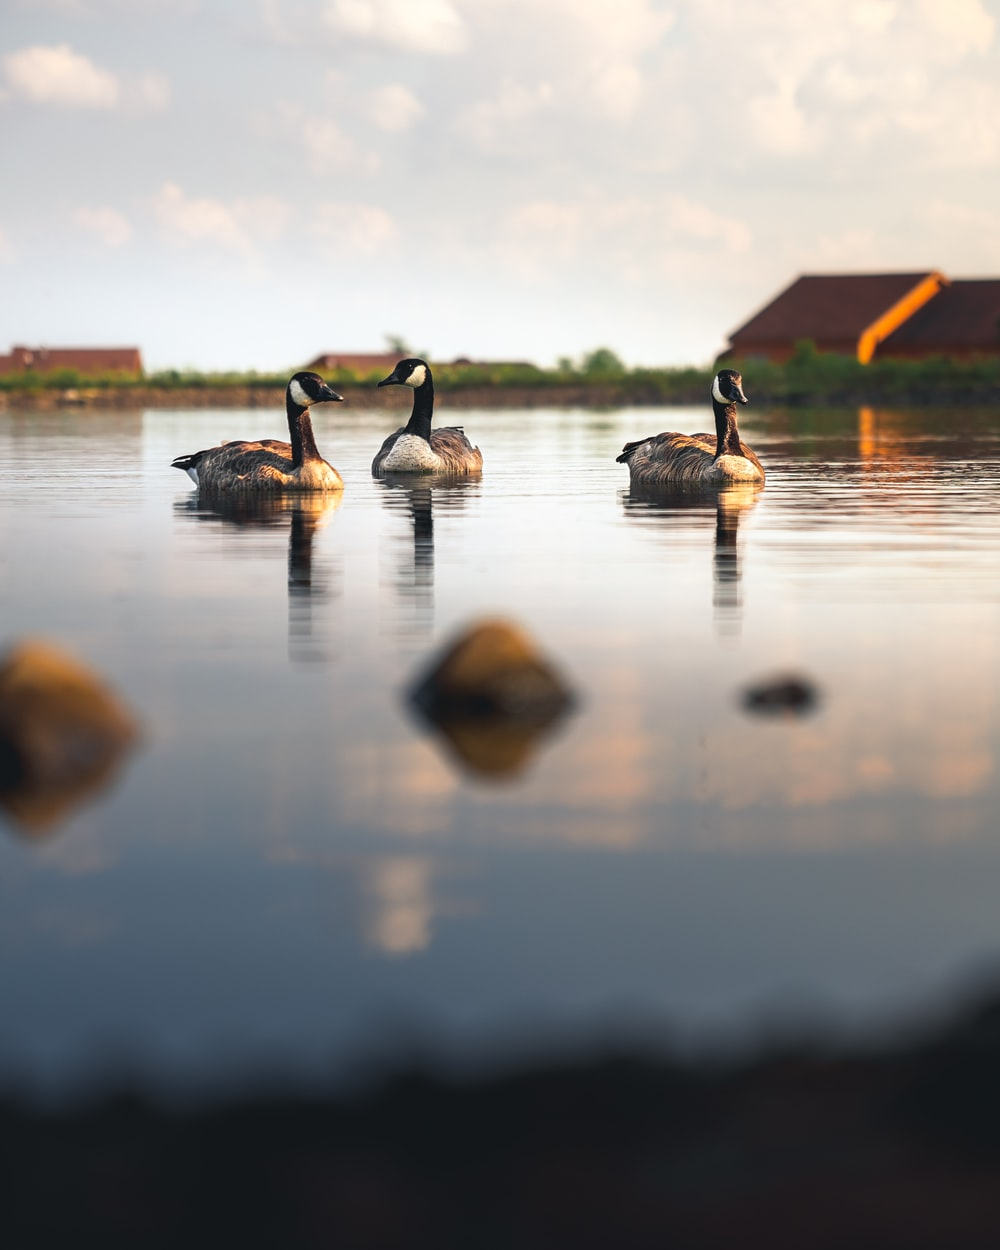 flock of geese on water during daytime